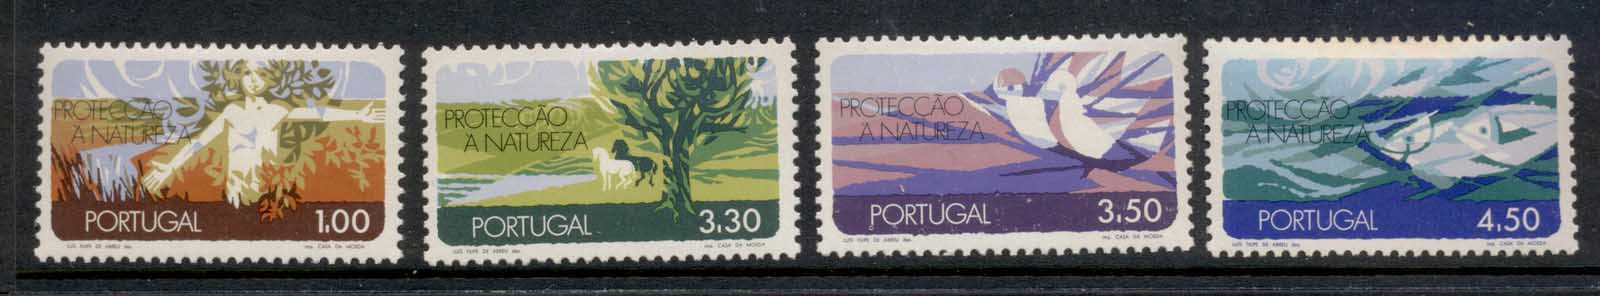 Portugal 1971 Nature Conservation MLH